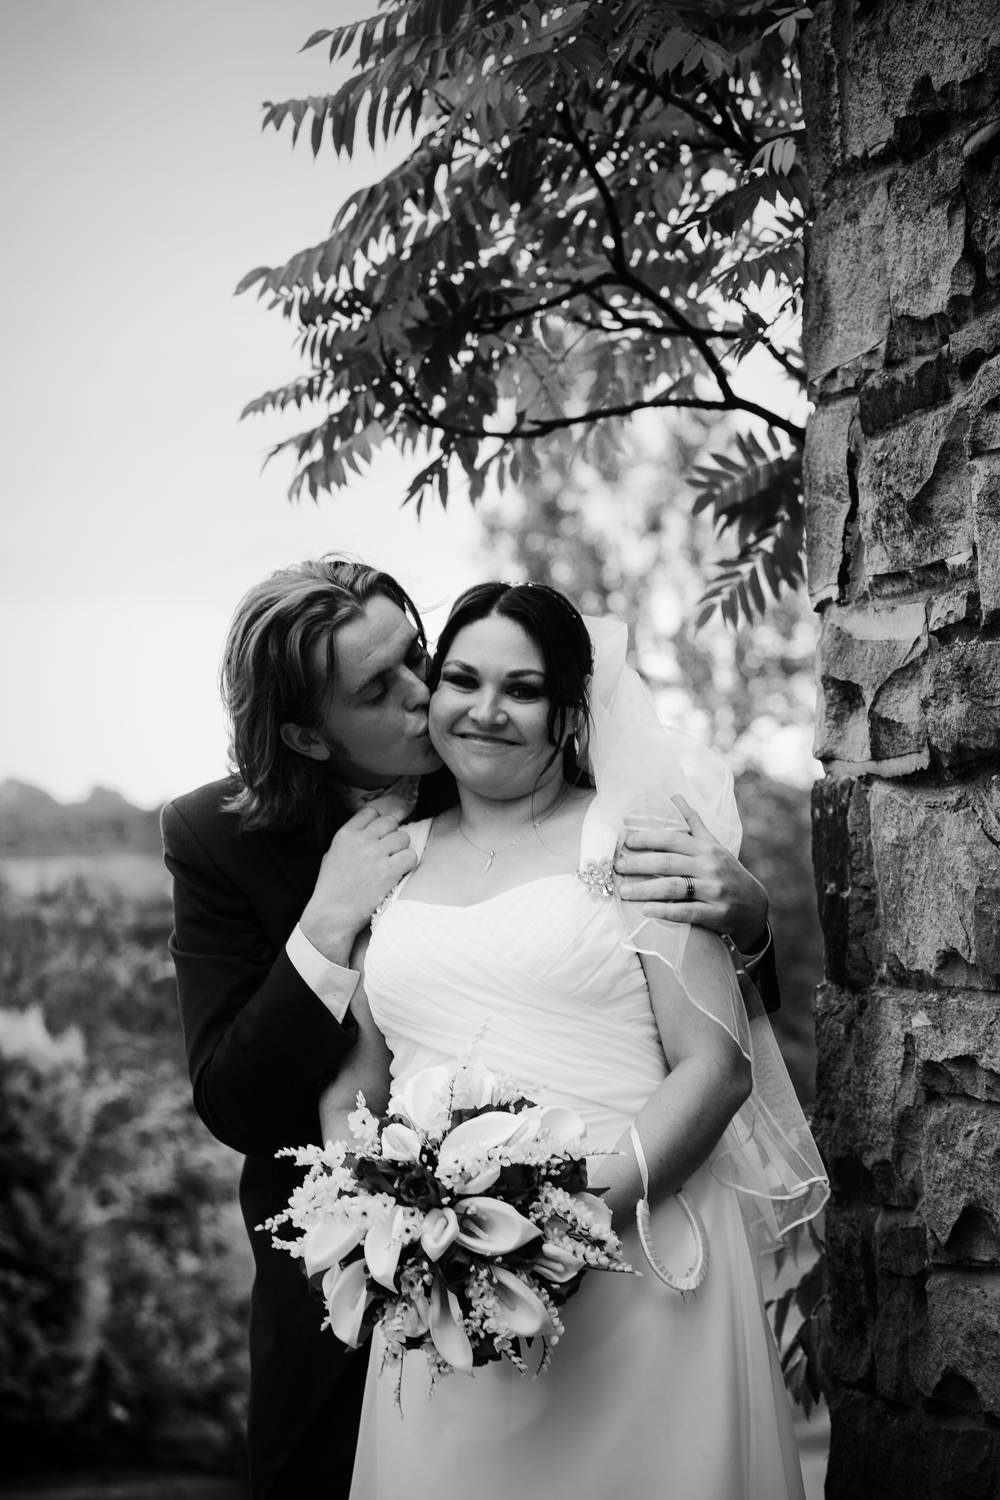 The groom kisses the bride on the neck during black and white photographs taken at South Causey Inn, Durham